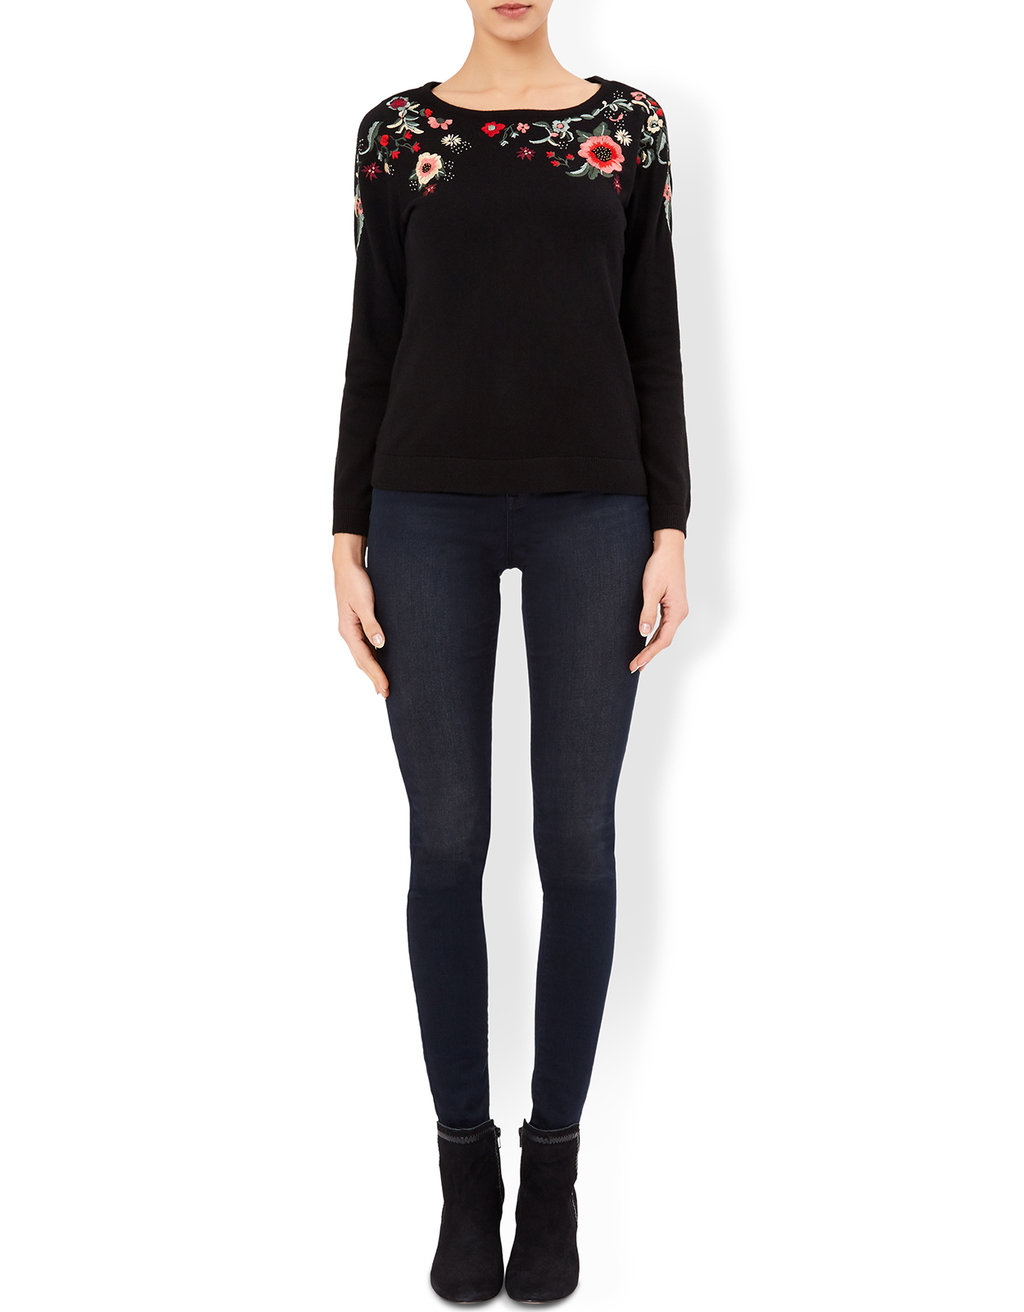 Beth Floral Embroidered Jumper - style: standard; predominant colour: black; occasions: casual; length: standard; fibres: cotton - mix; fit: standard fit; neckline: crew; sleeve length: long sleeve; sleeve style: standard; texture group: knits/crochet; pattern type: knitted - fine stitch; pattern: florals; embellishment: embroidered; season: a/w 2016; wardrobe: highlight; embellishment location: bust